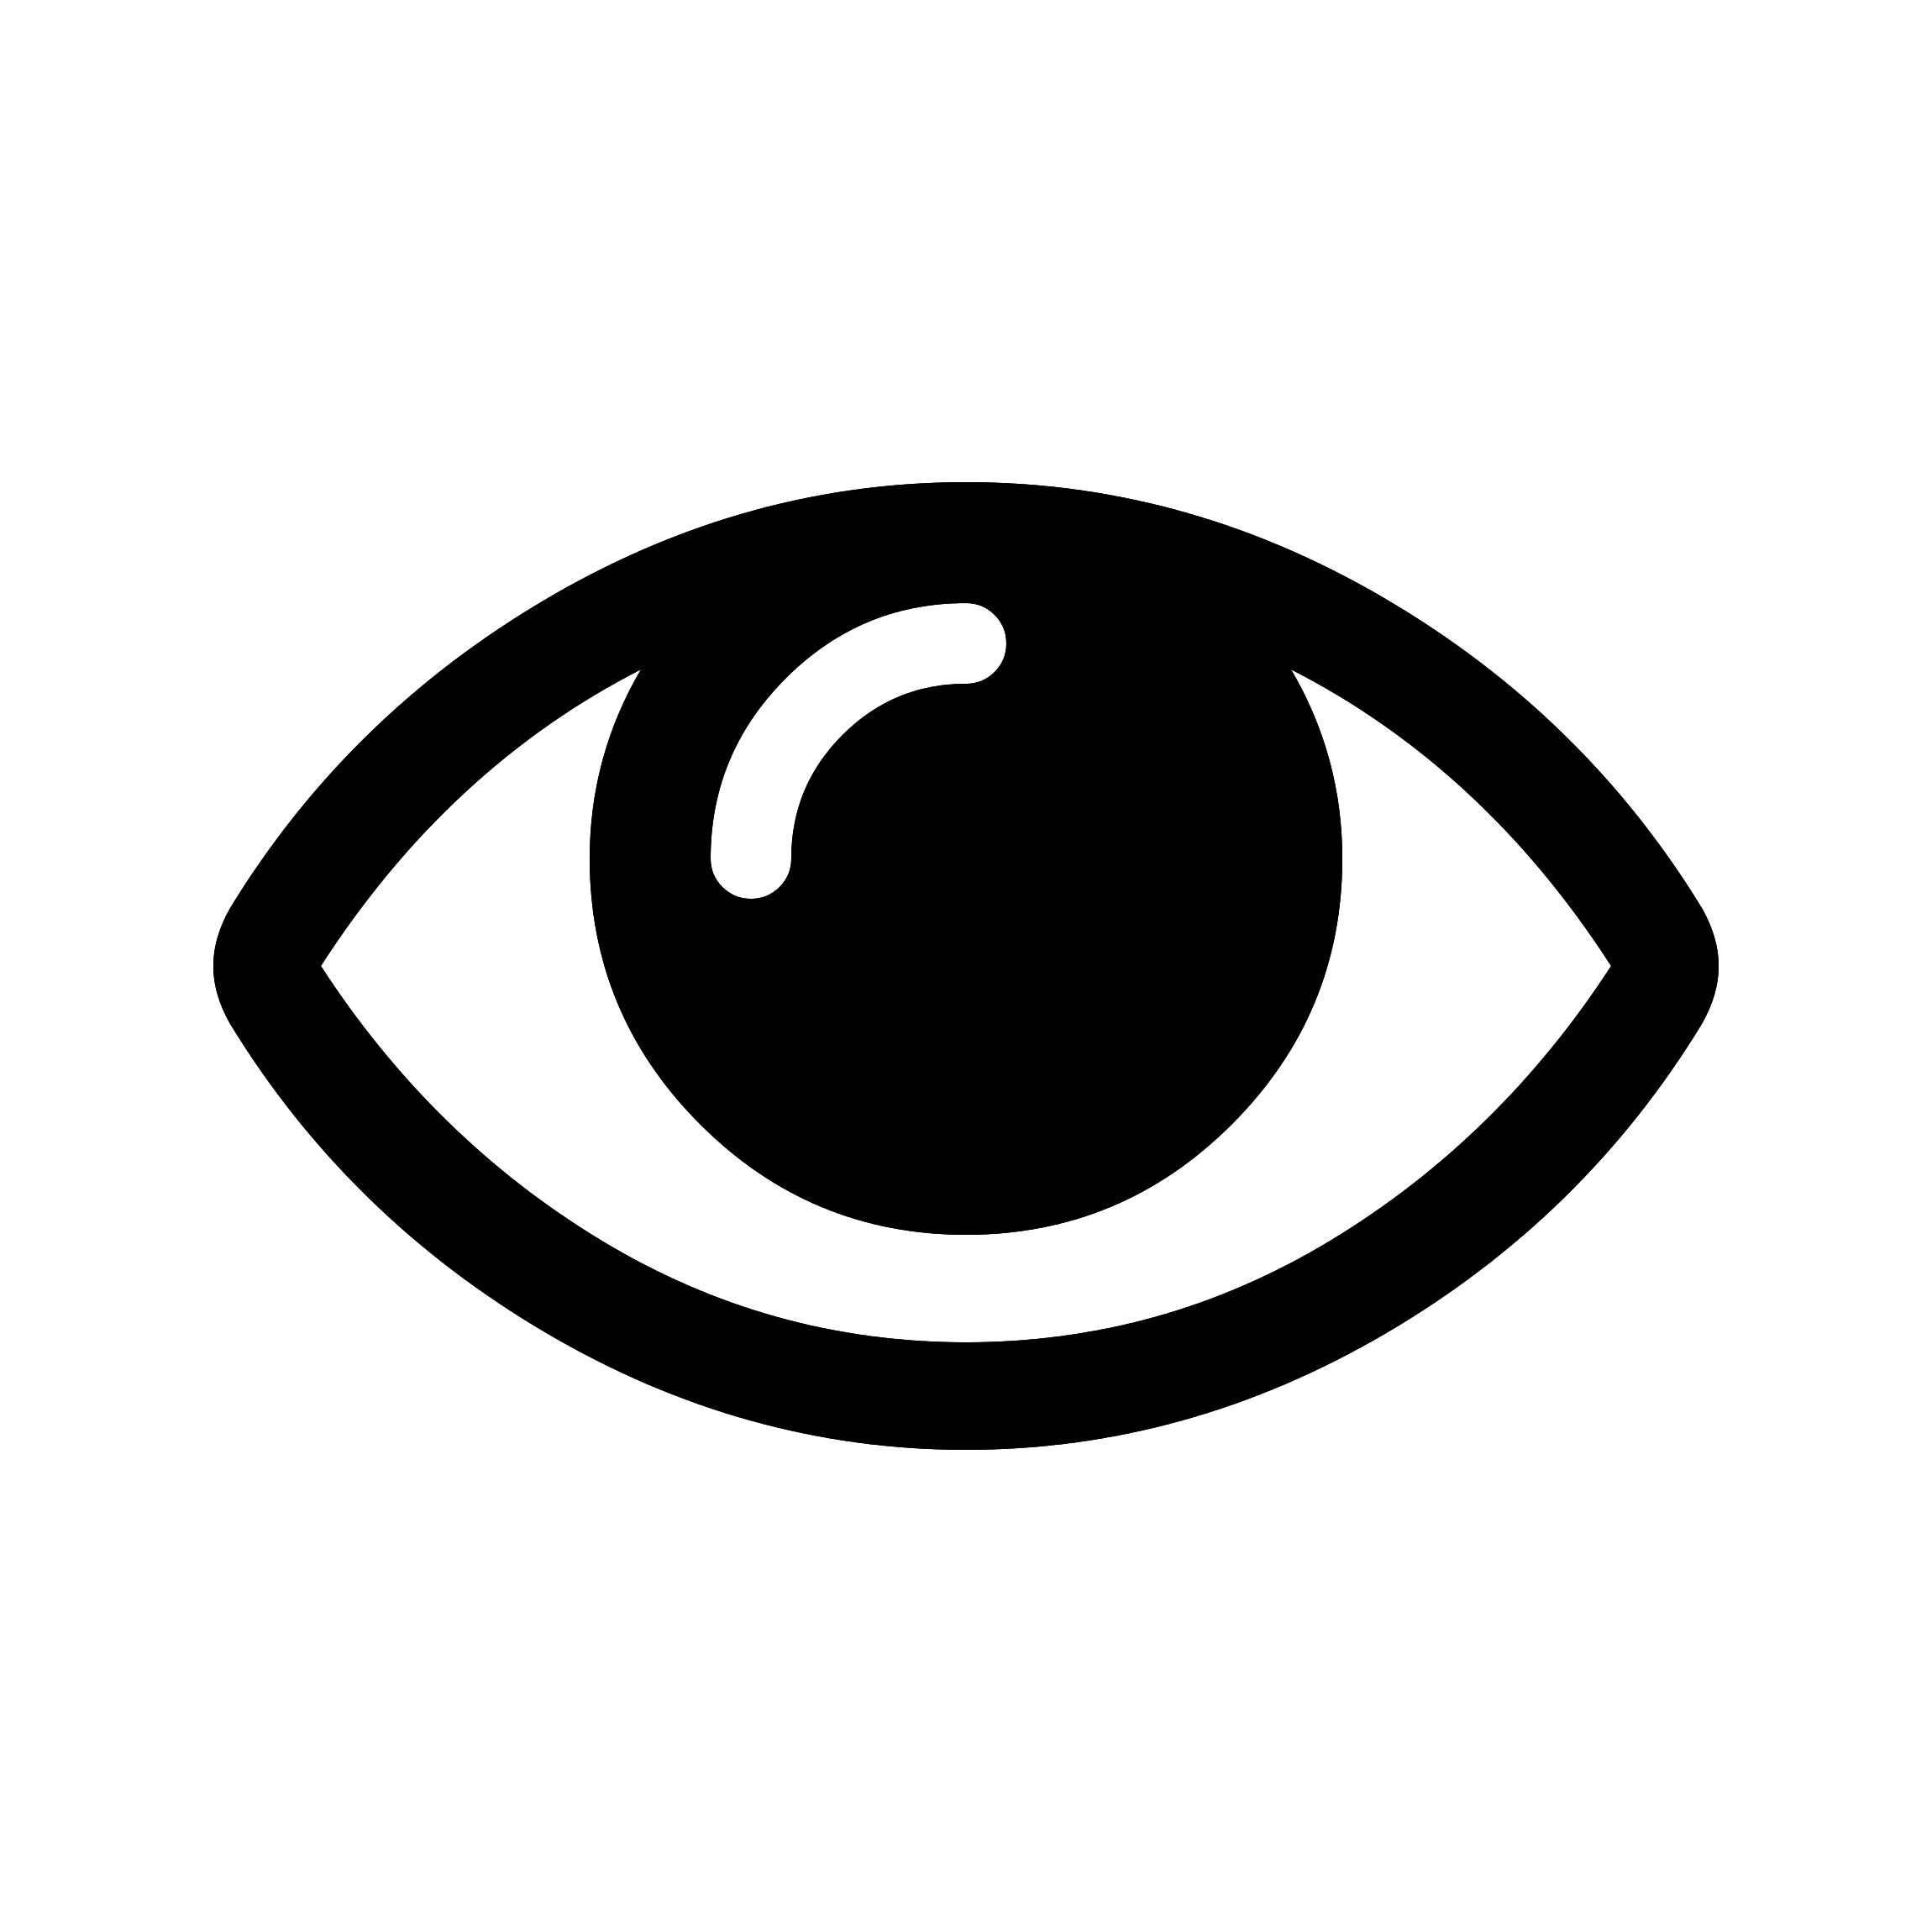 data/images/eye.png